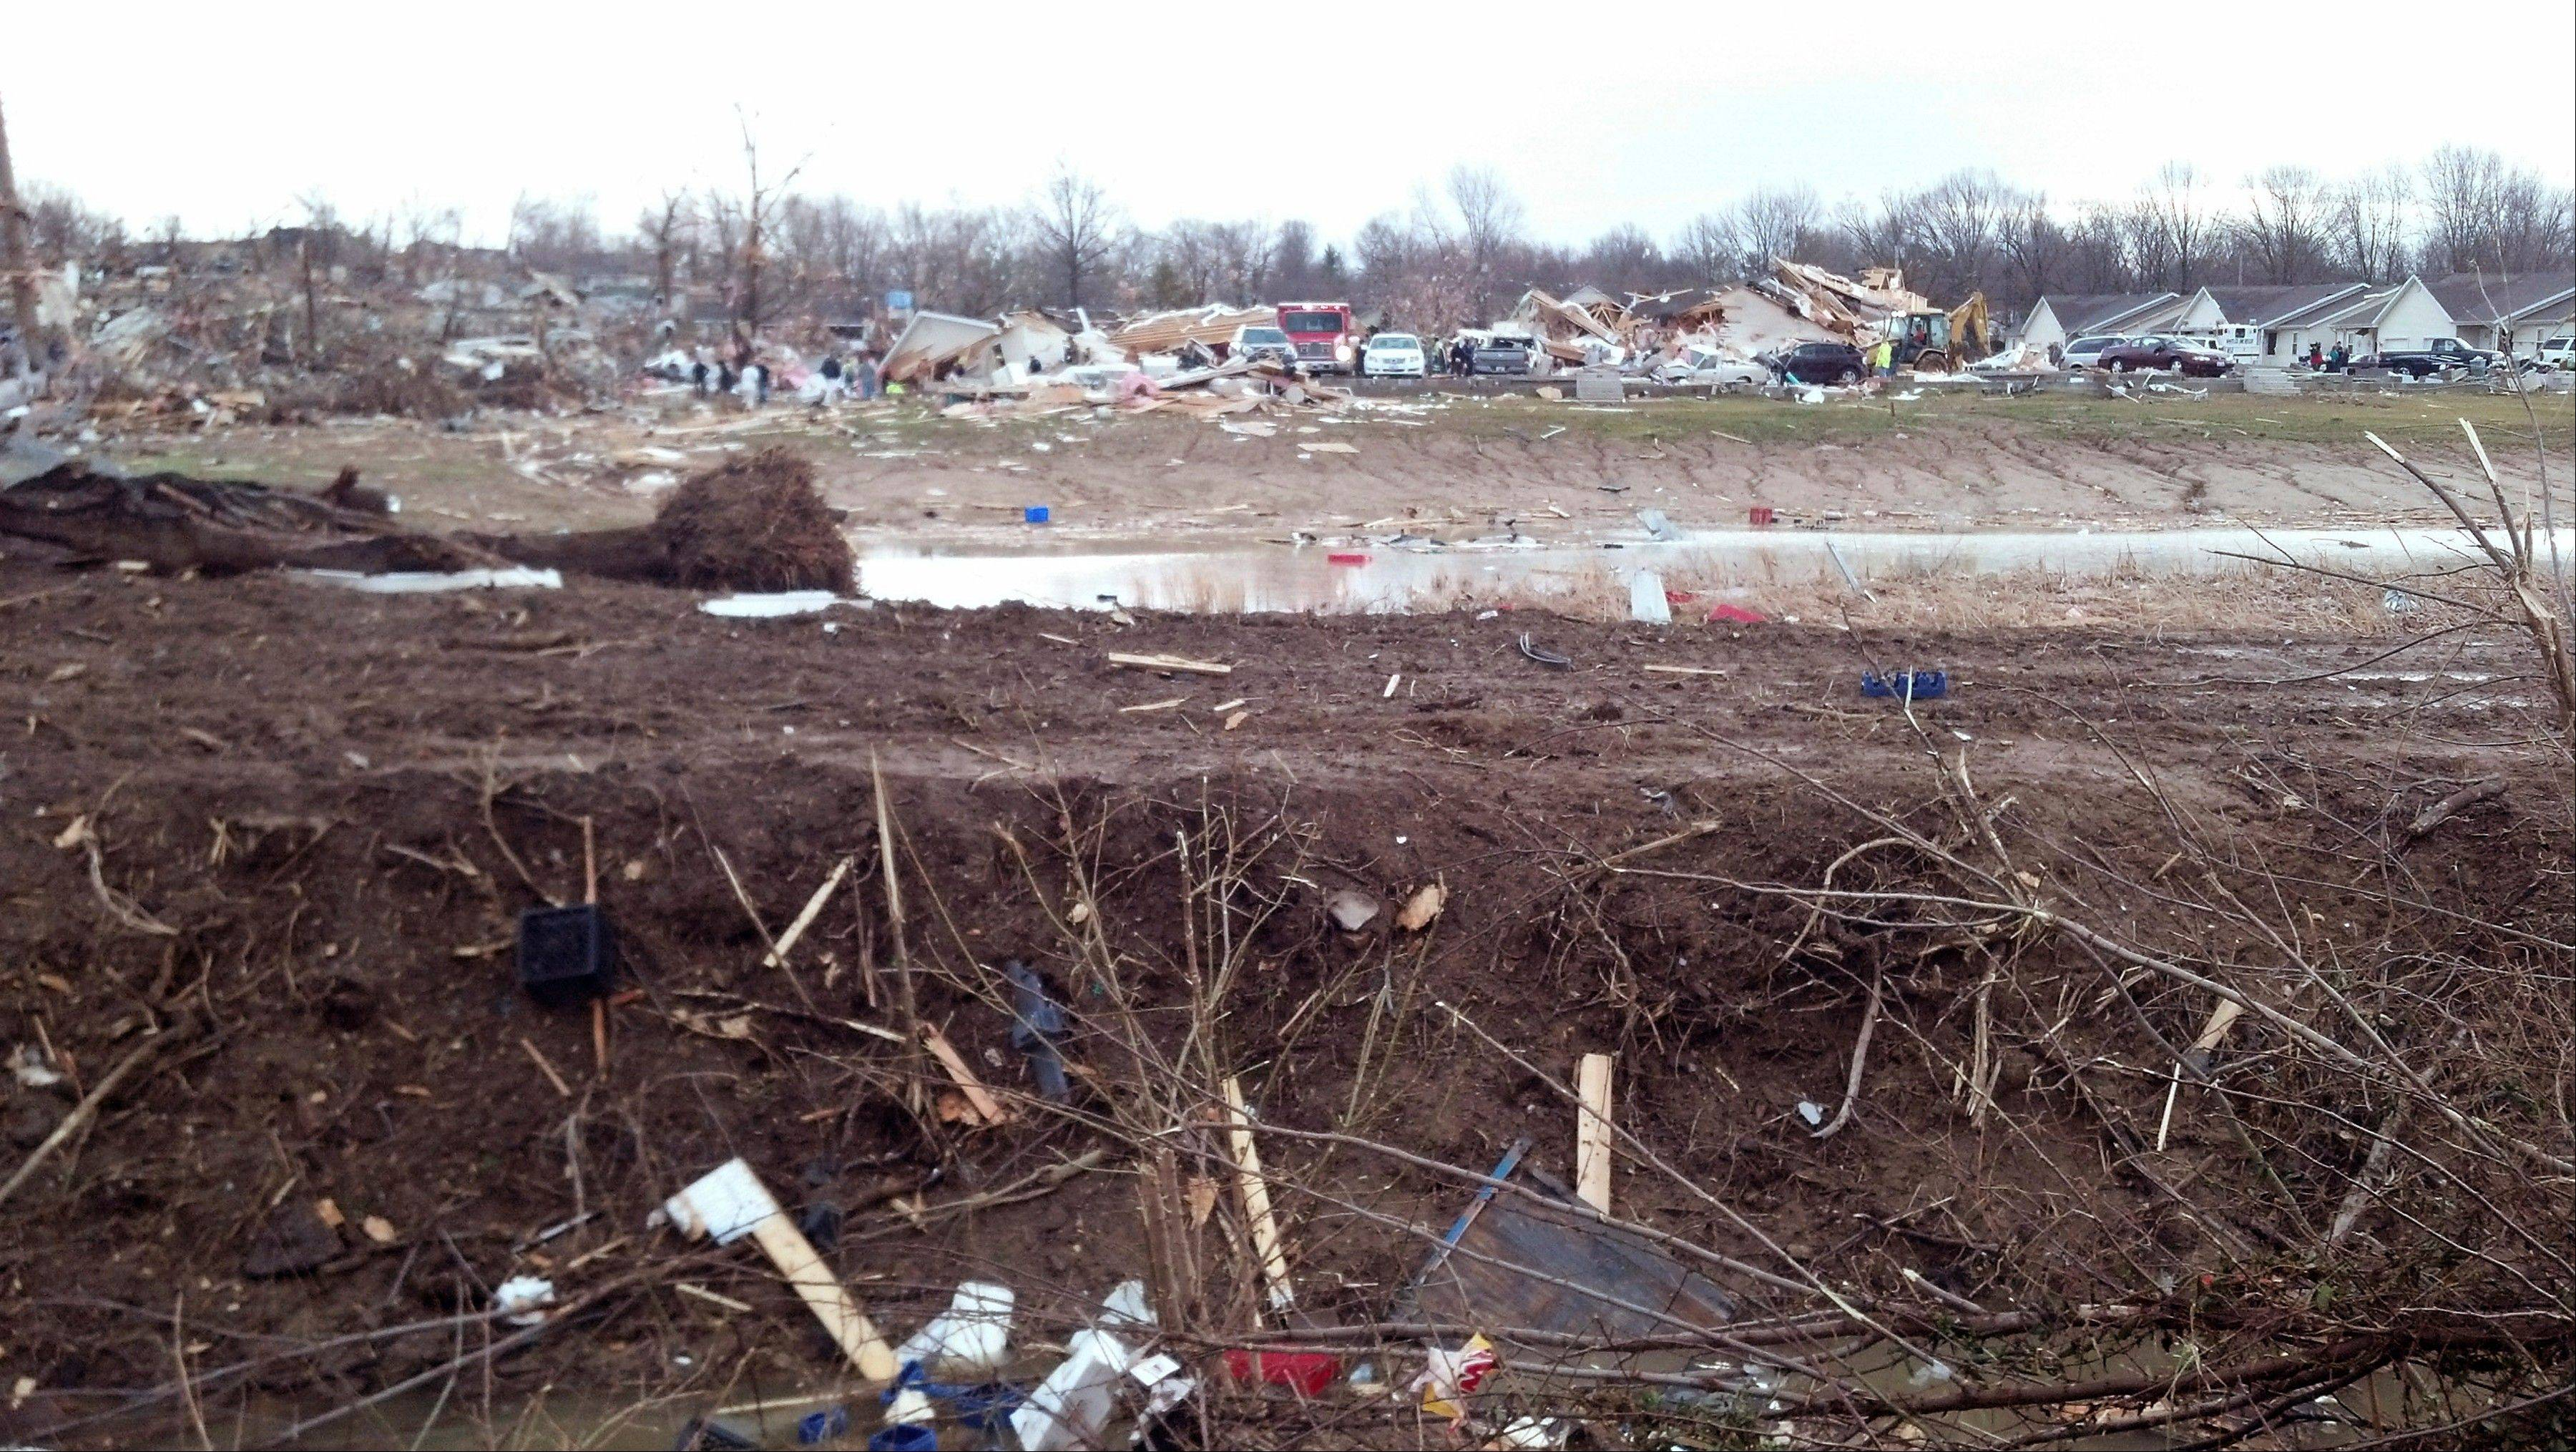 In this image made with a cellphone, a residential area is seen severely damaged in Harrisburg, Ill., after a severe storm swept through the area early Wednesday morning, Feb. 29, 2012. At least three people are confirmed dead in Harrisburg, said Harrisburg Medical Center CEO Vince Ashley, and the city's medical center scrambling to treat an influx of injured.